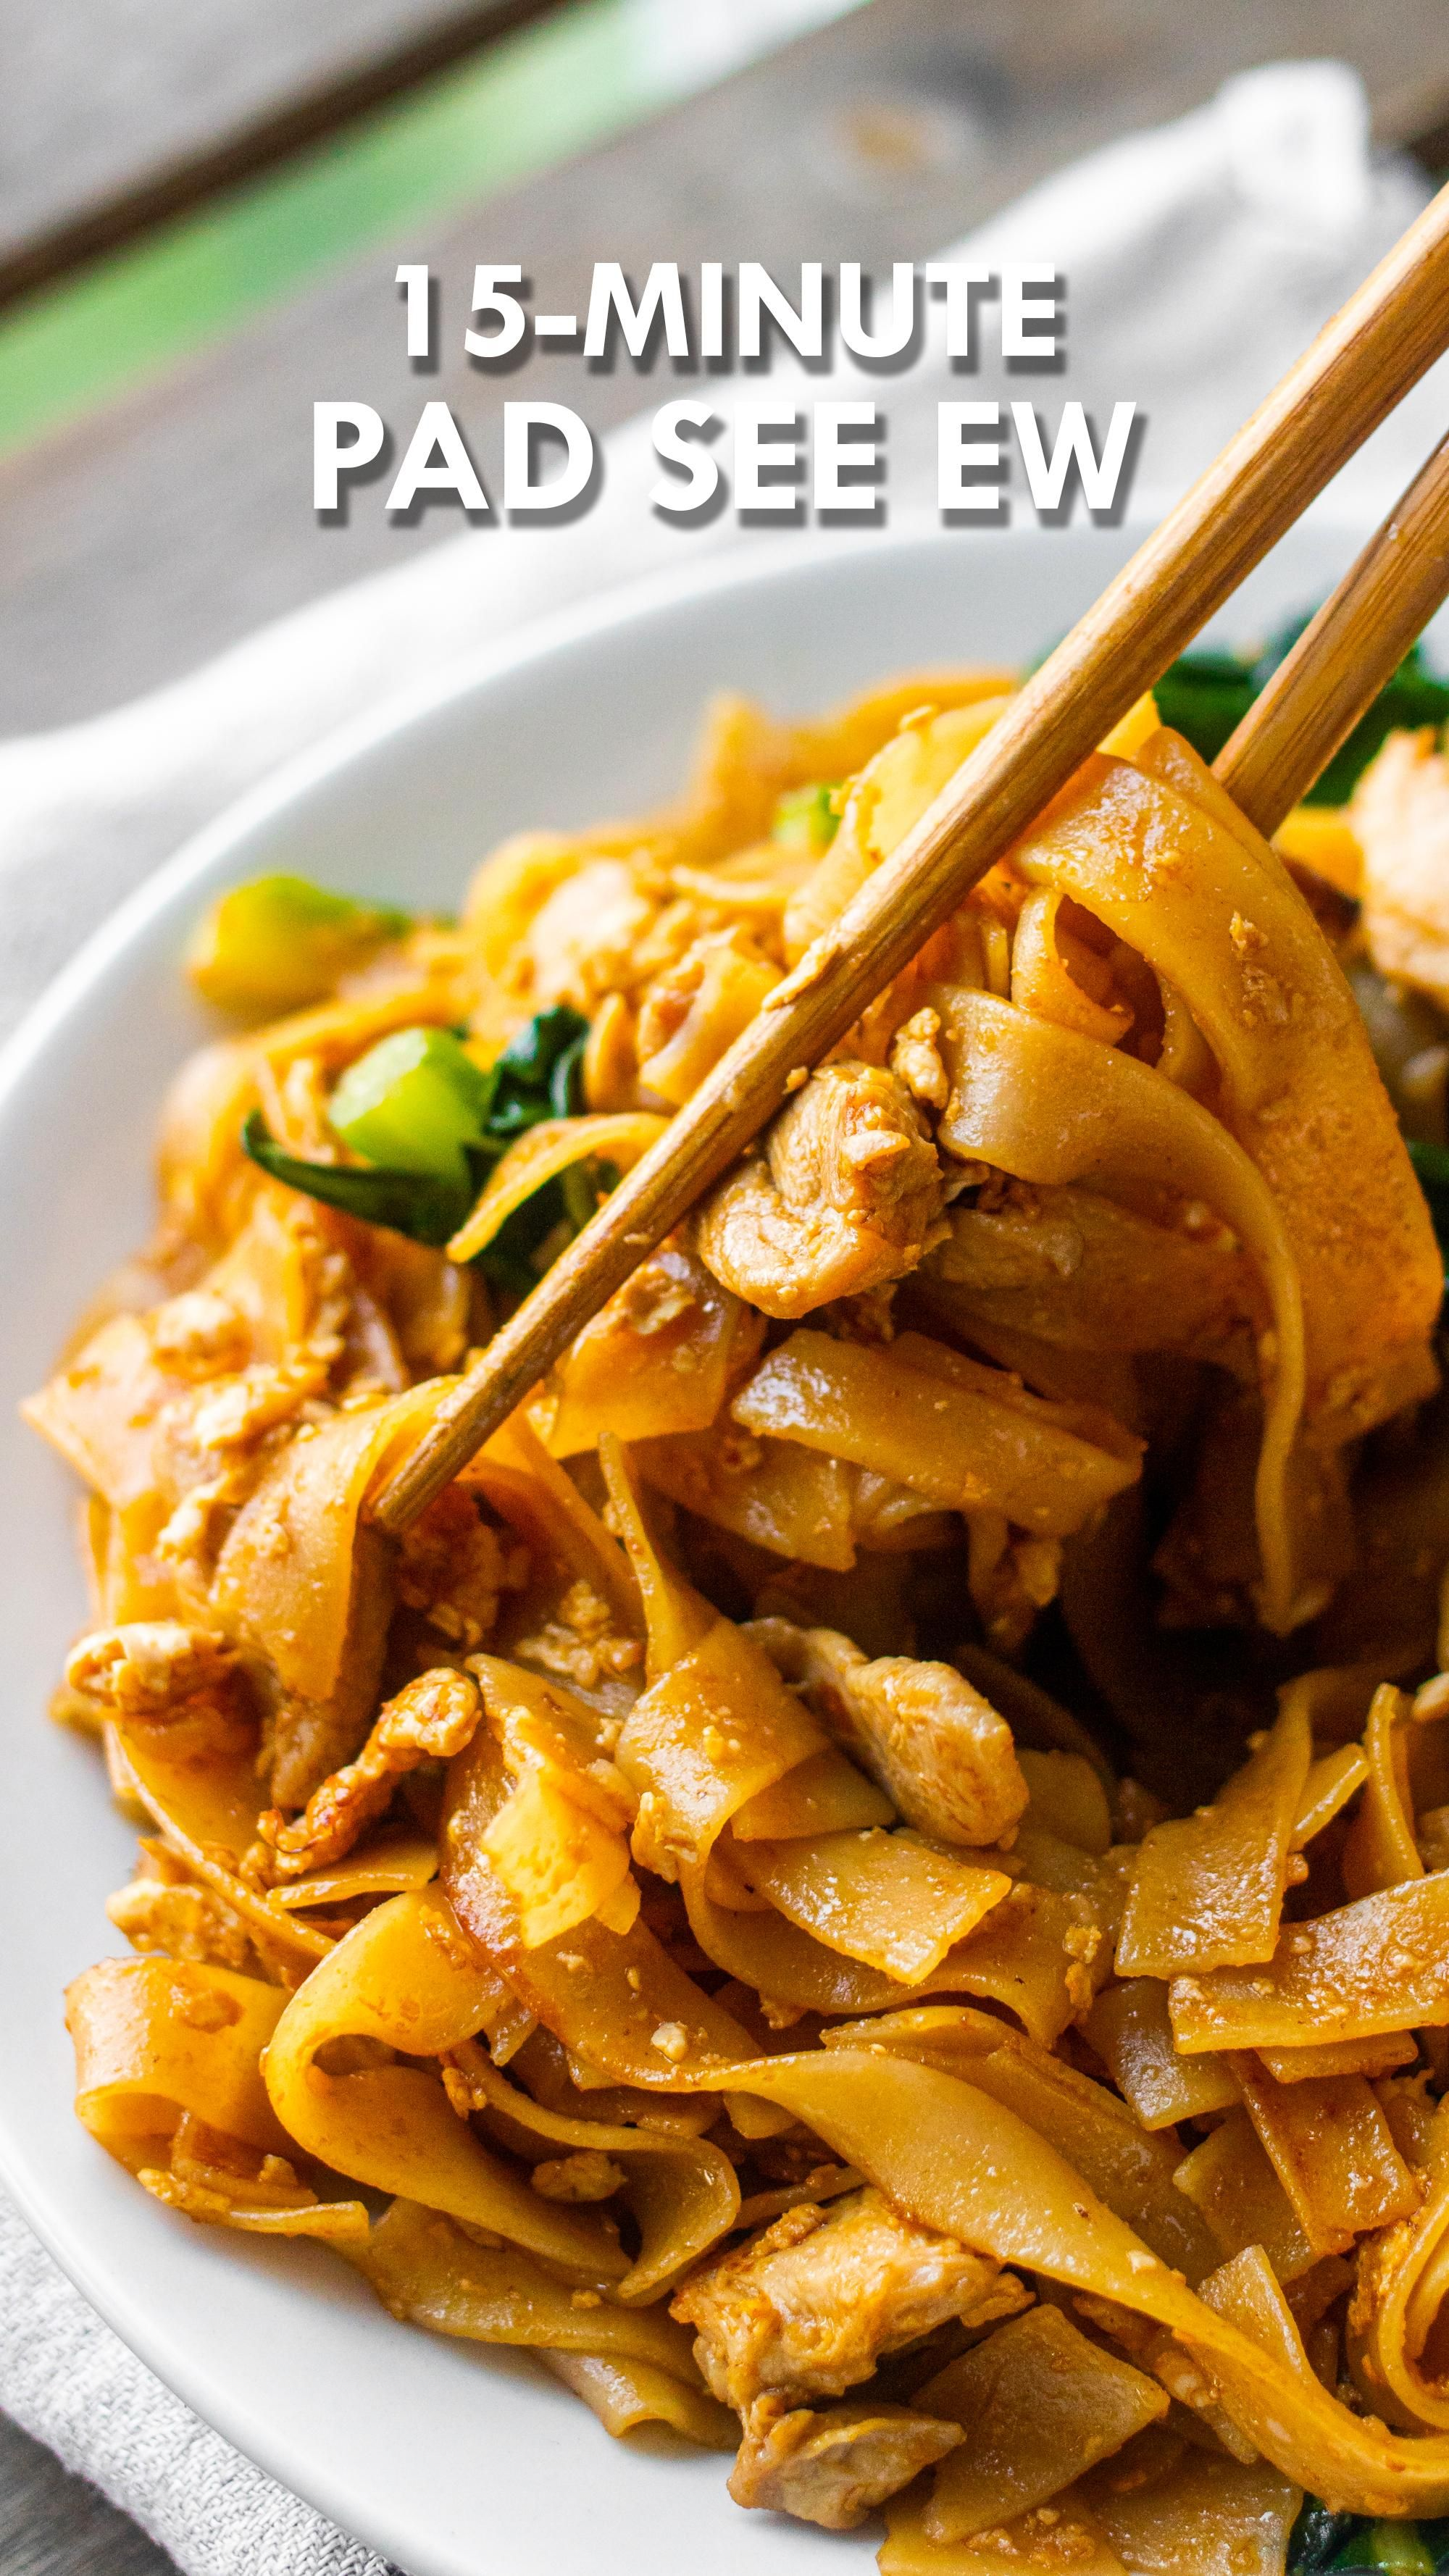 15-Minute Pad See Ew (Thai Stir-Fried Noodles)